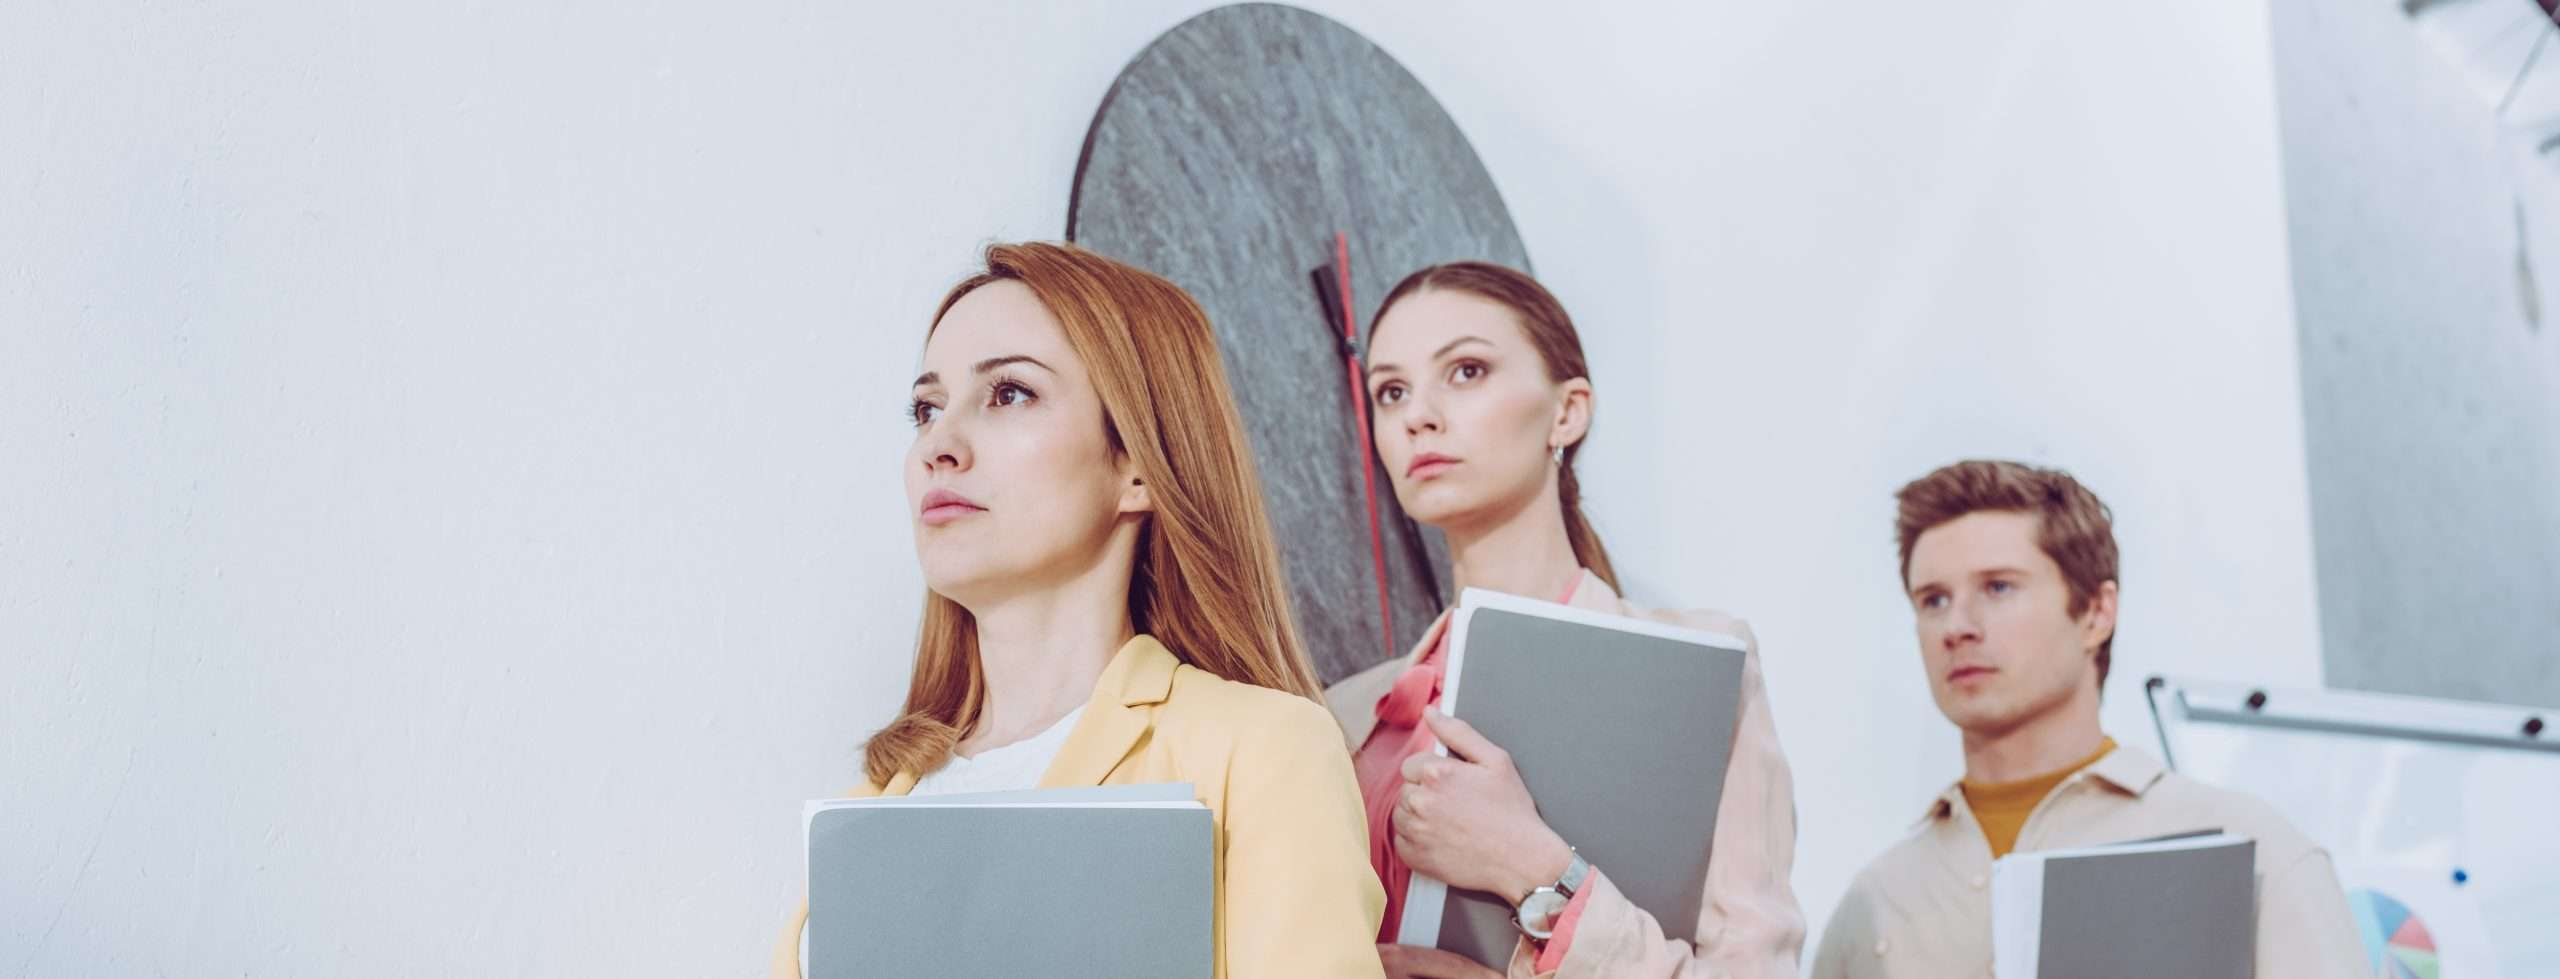 Three job candidates, sourced and selected with applicant tracking systems, hold folders while waiting in line